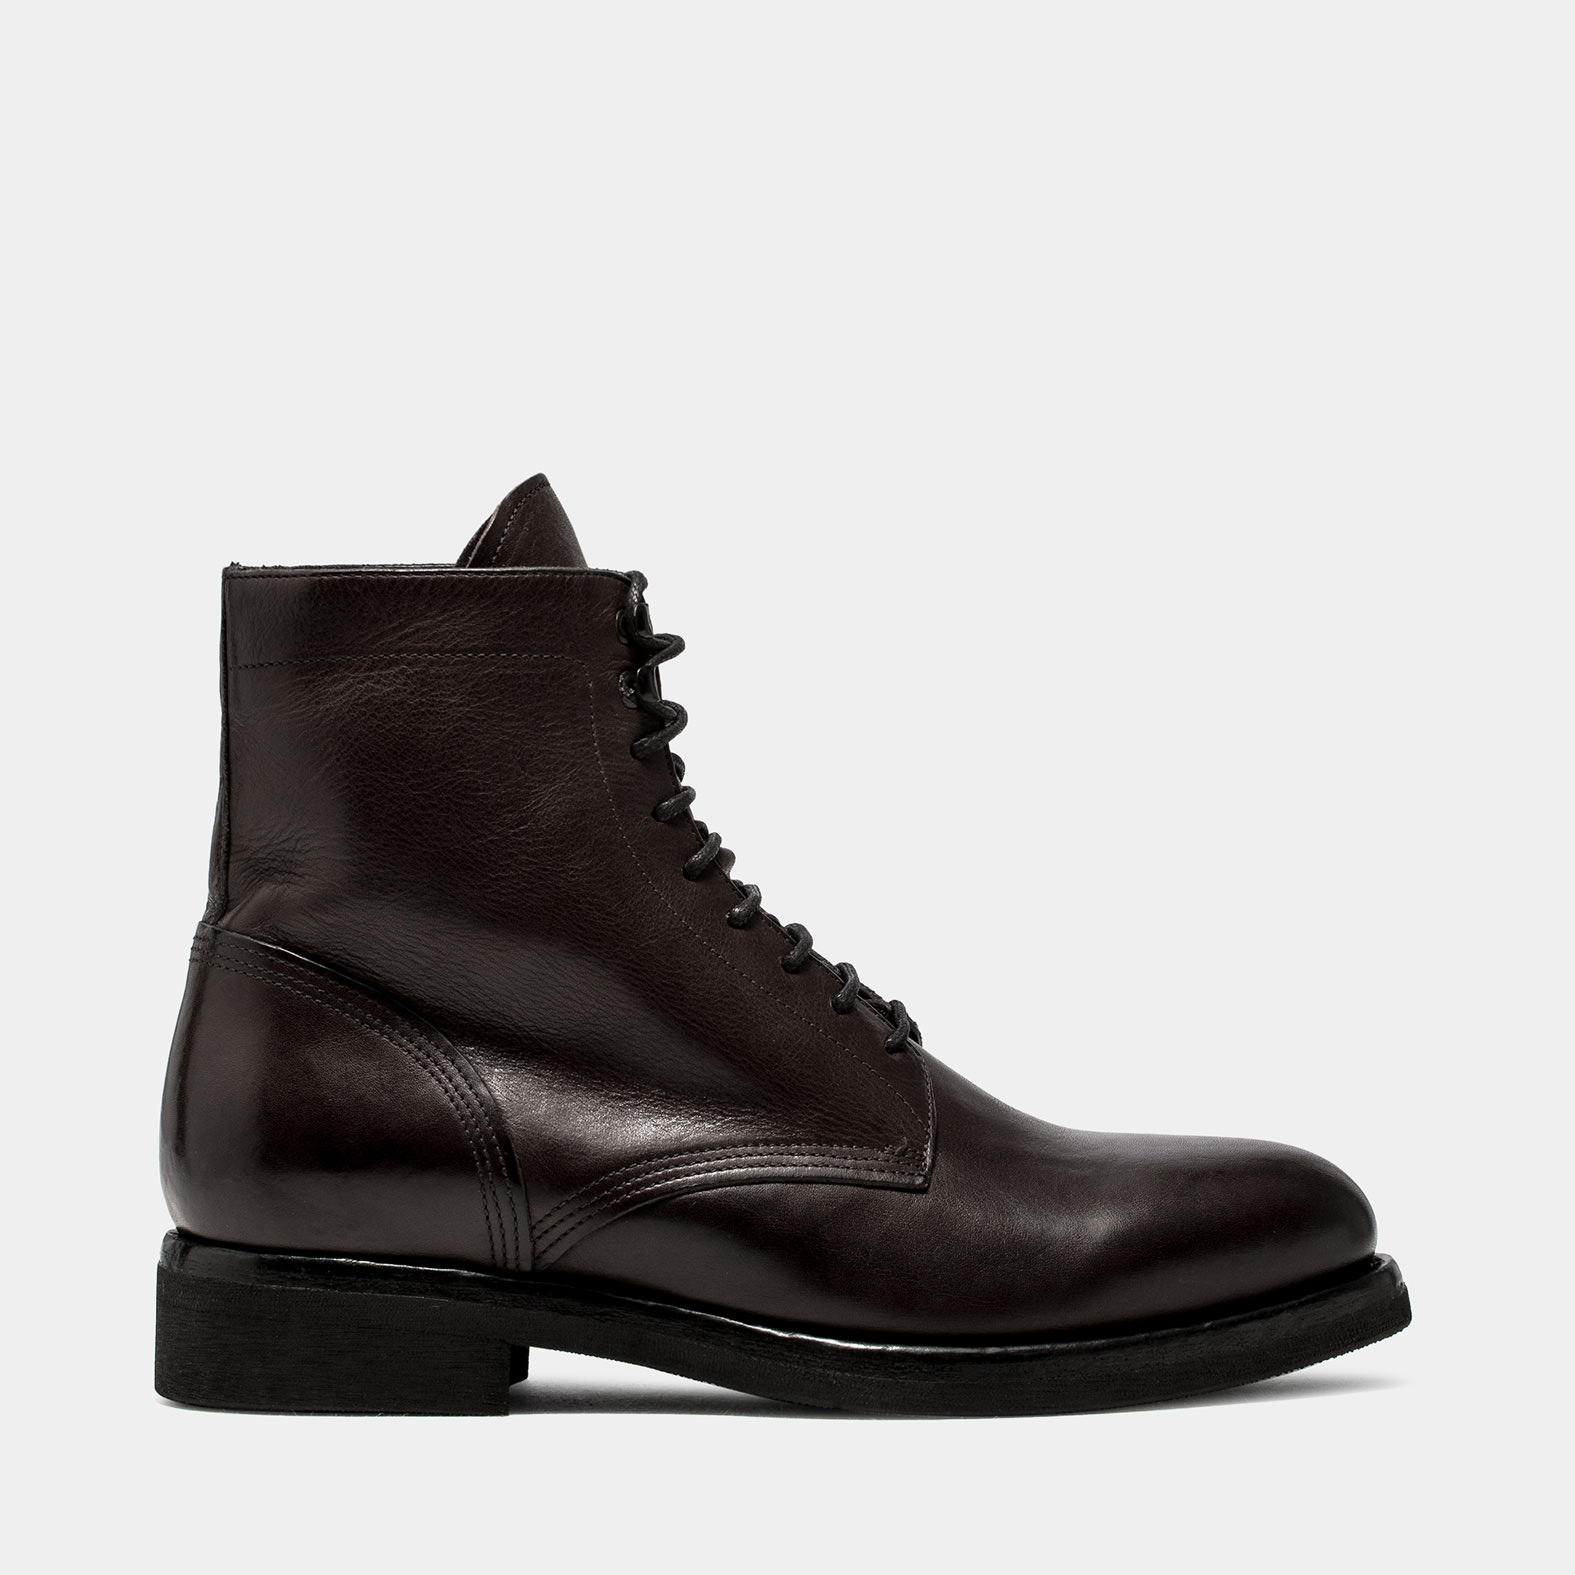 BUTTERO: BROWN LEATHER TOM ANKLE BOOTS